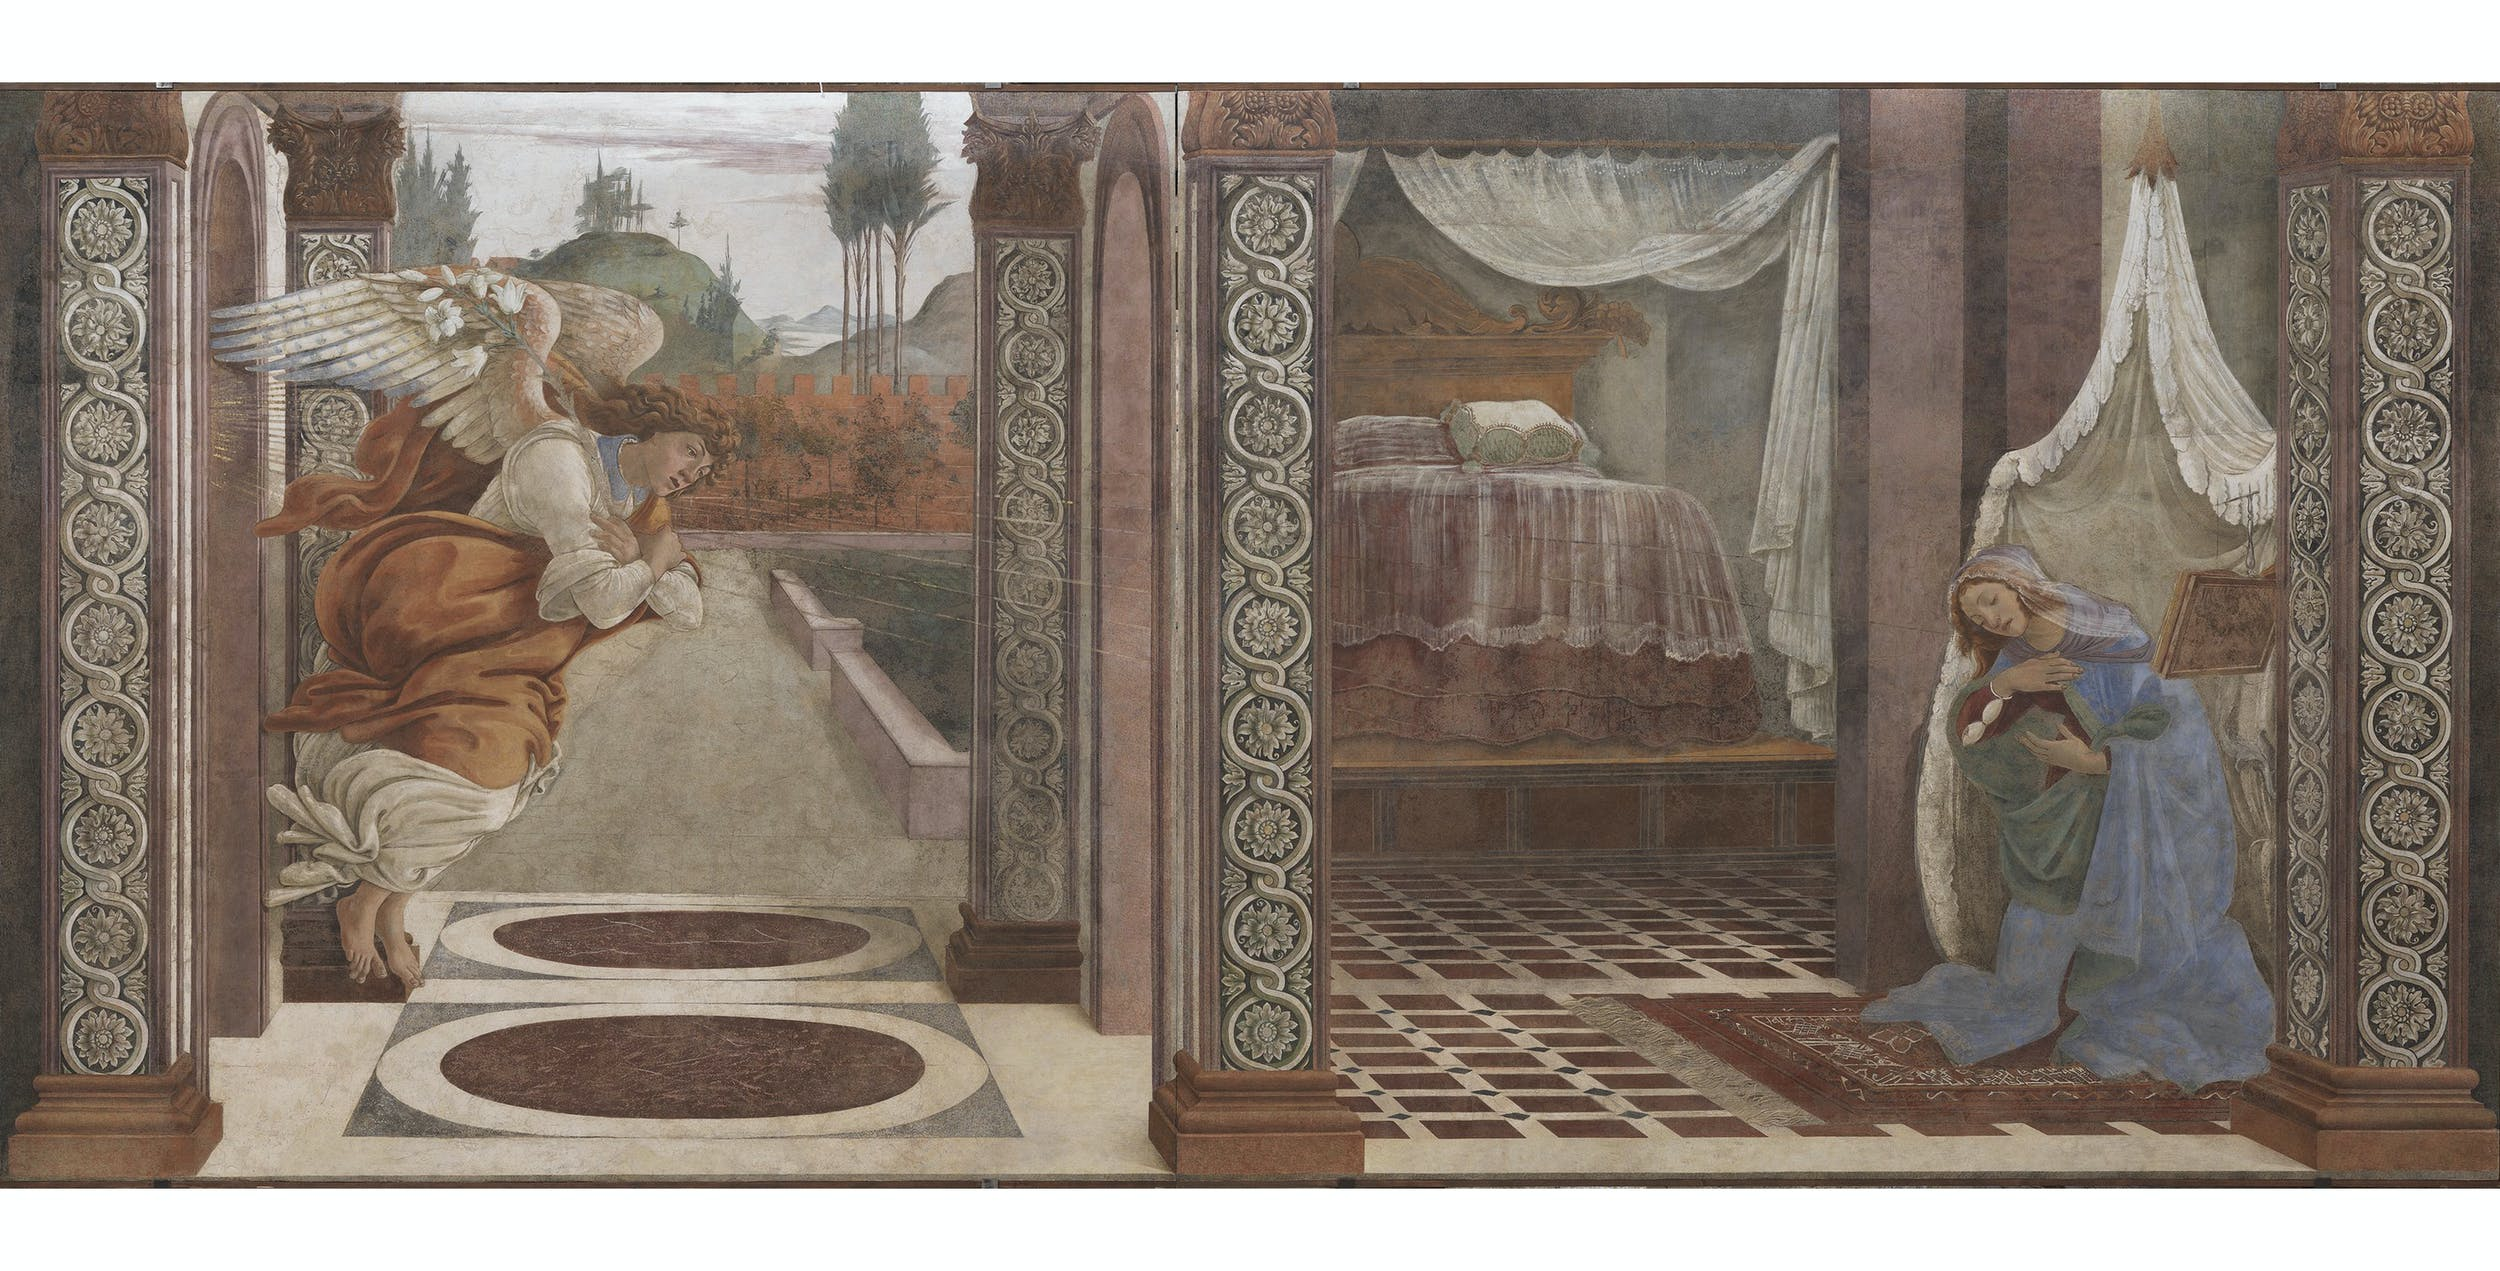 Sandro Botticelli, Annunciazione (affresco staccato) I Sandro Botticelli, Annunciation (detached fresco)